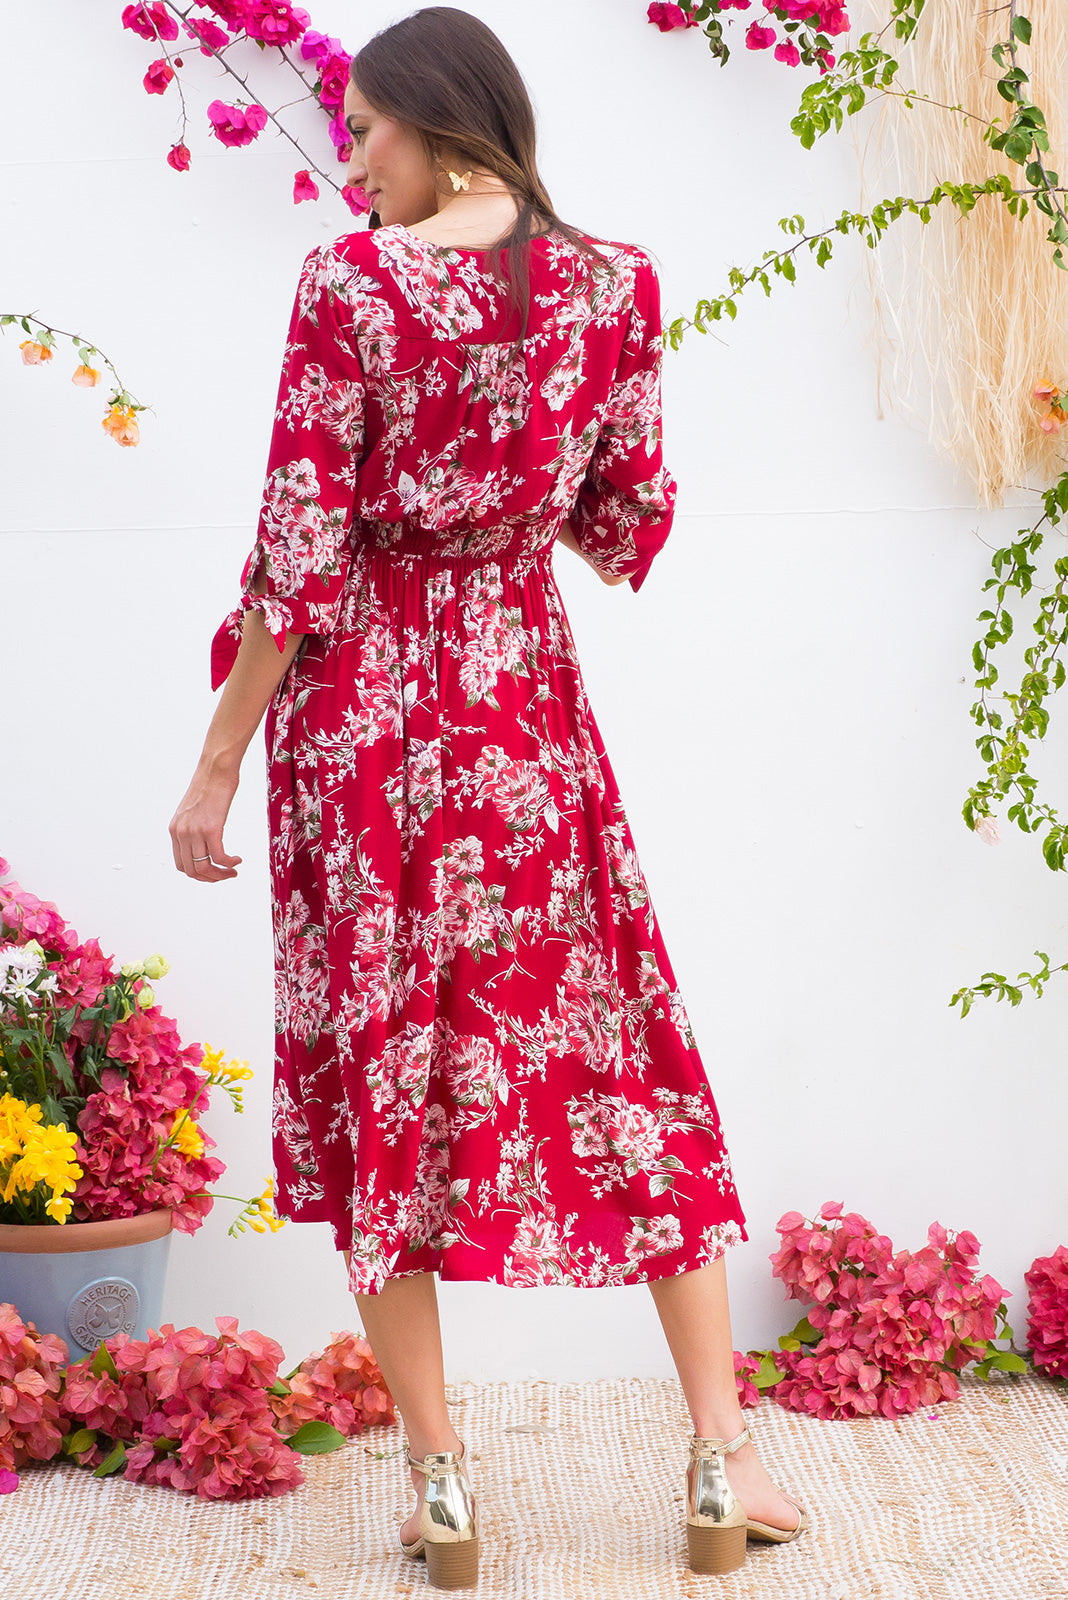 Henrietta Red Flowers Midi dress features a vintage inspired fitted basque waist and elasticated waist with a midi sleeve and deep v neck the fabric is a soft woven rayon in a bright red floral print